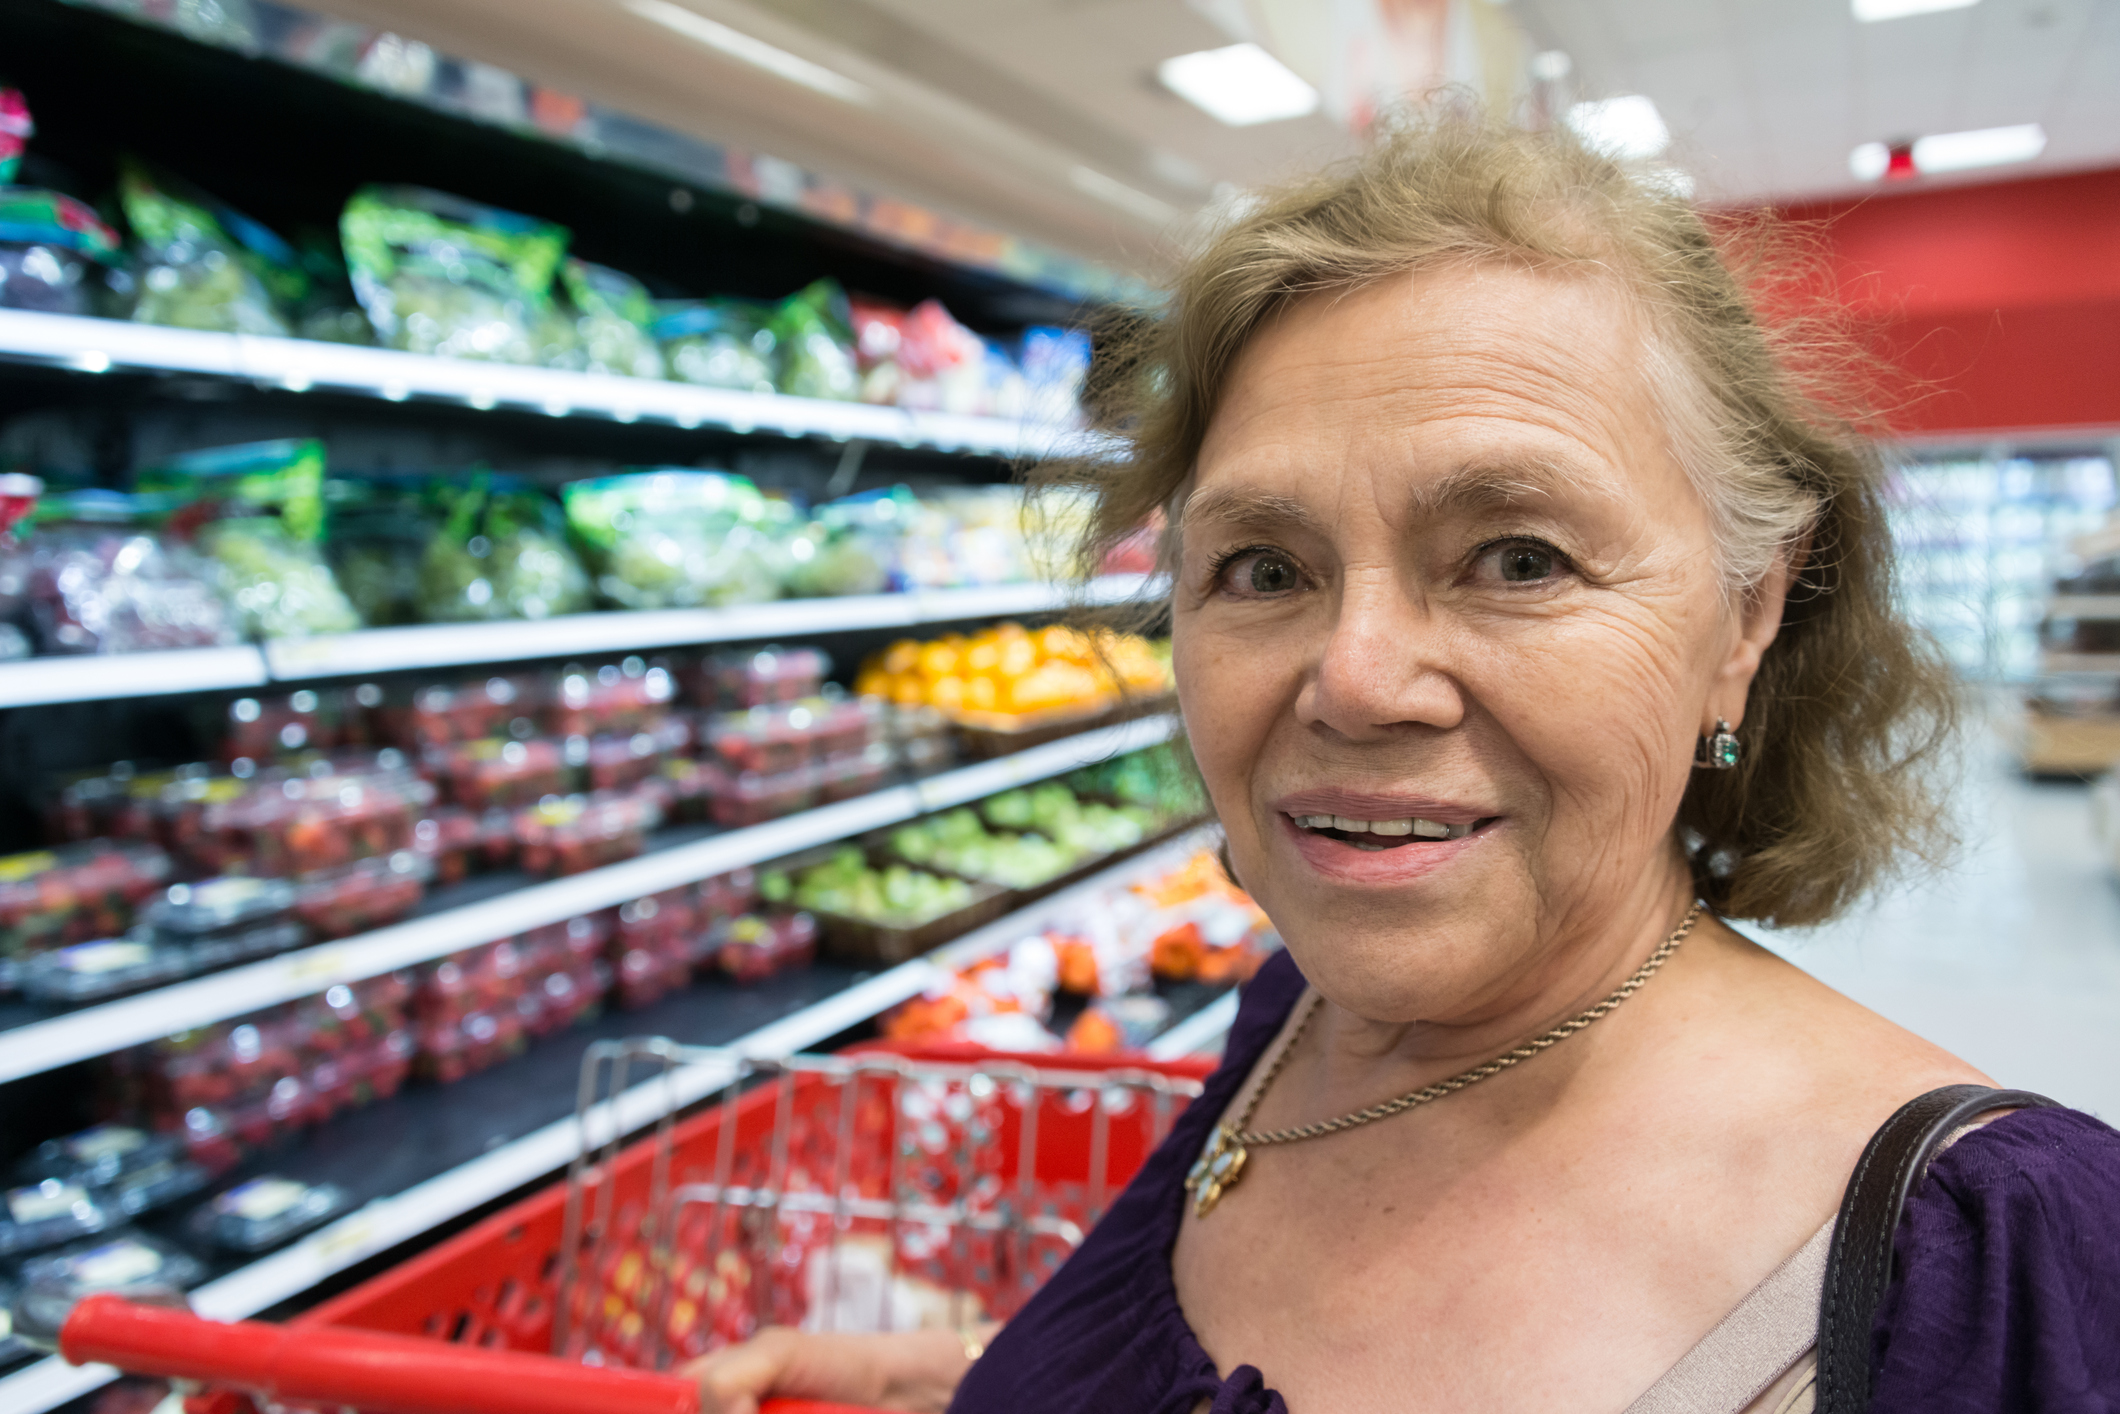 Senior woman buying groceries